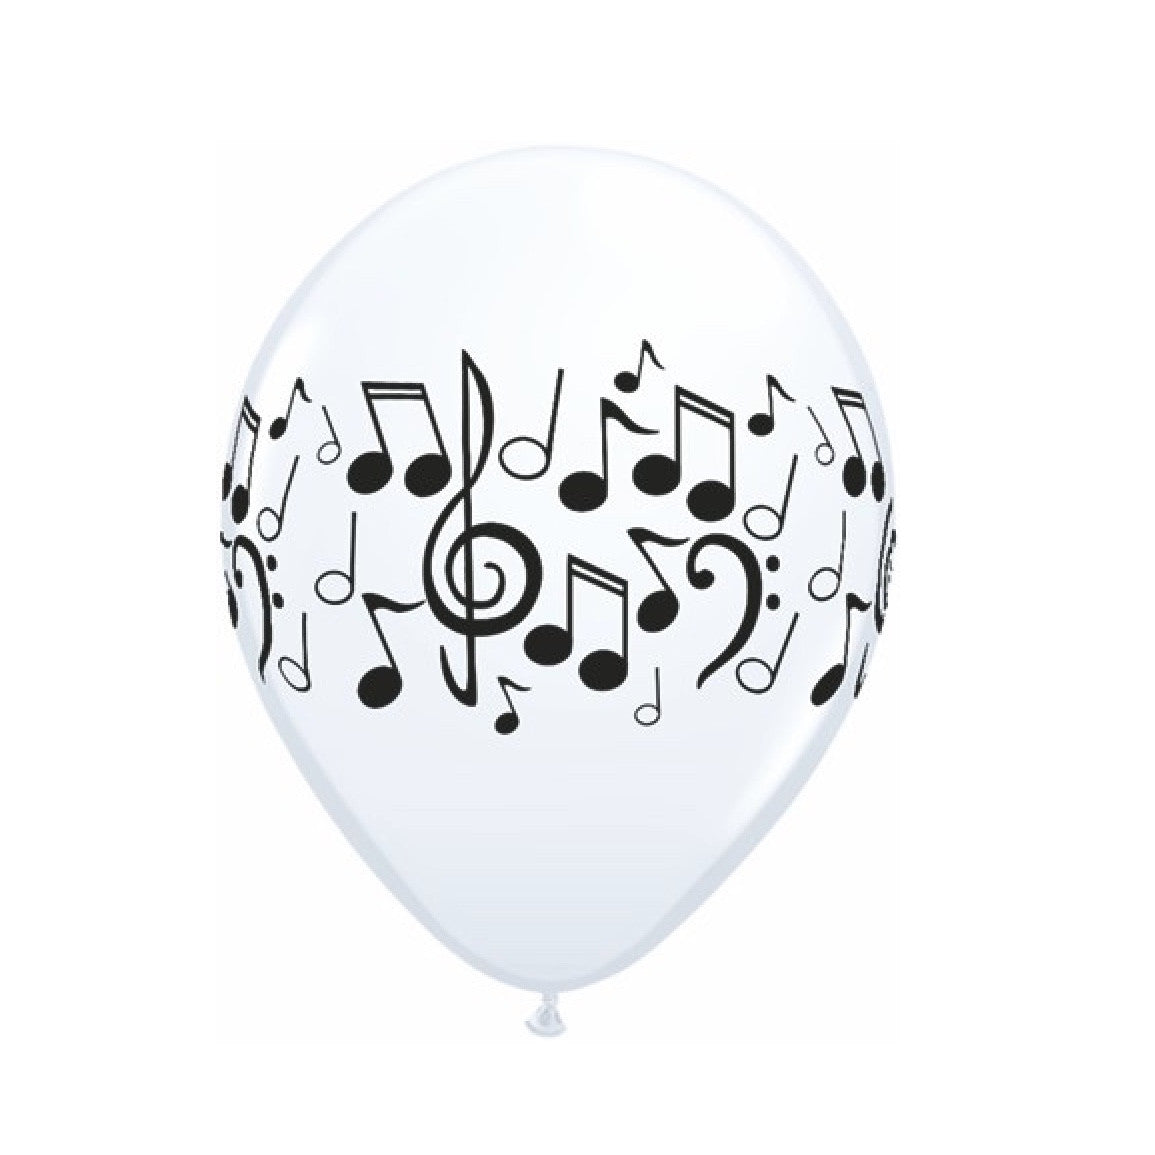 Musical Notes Balloons - Black & White, Surprize Enterprize, Putti Fine Furnishings